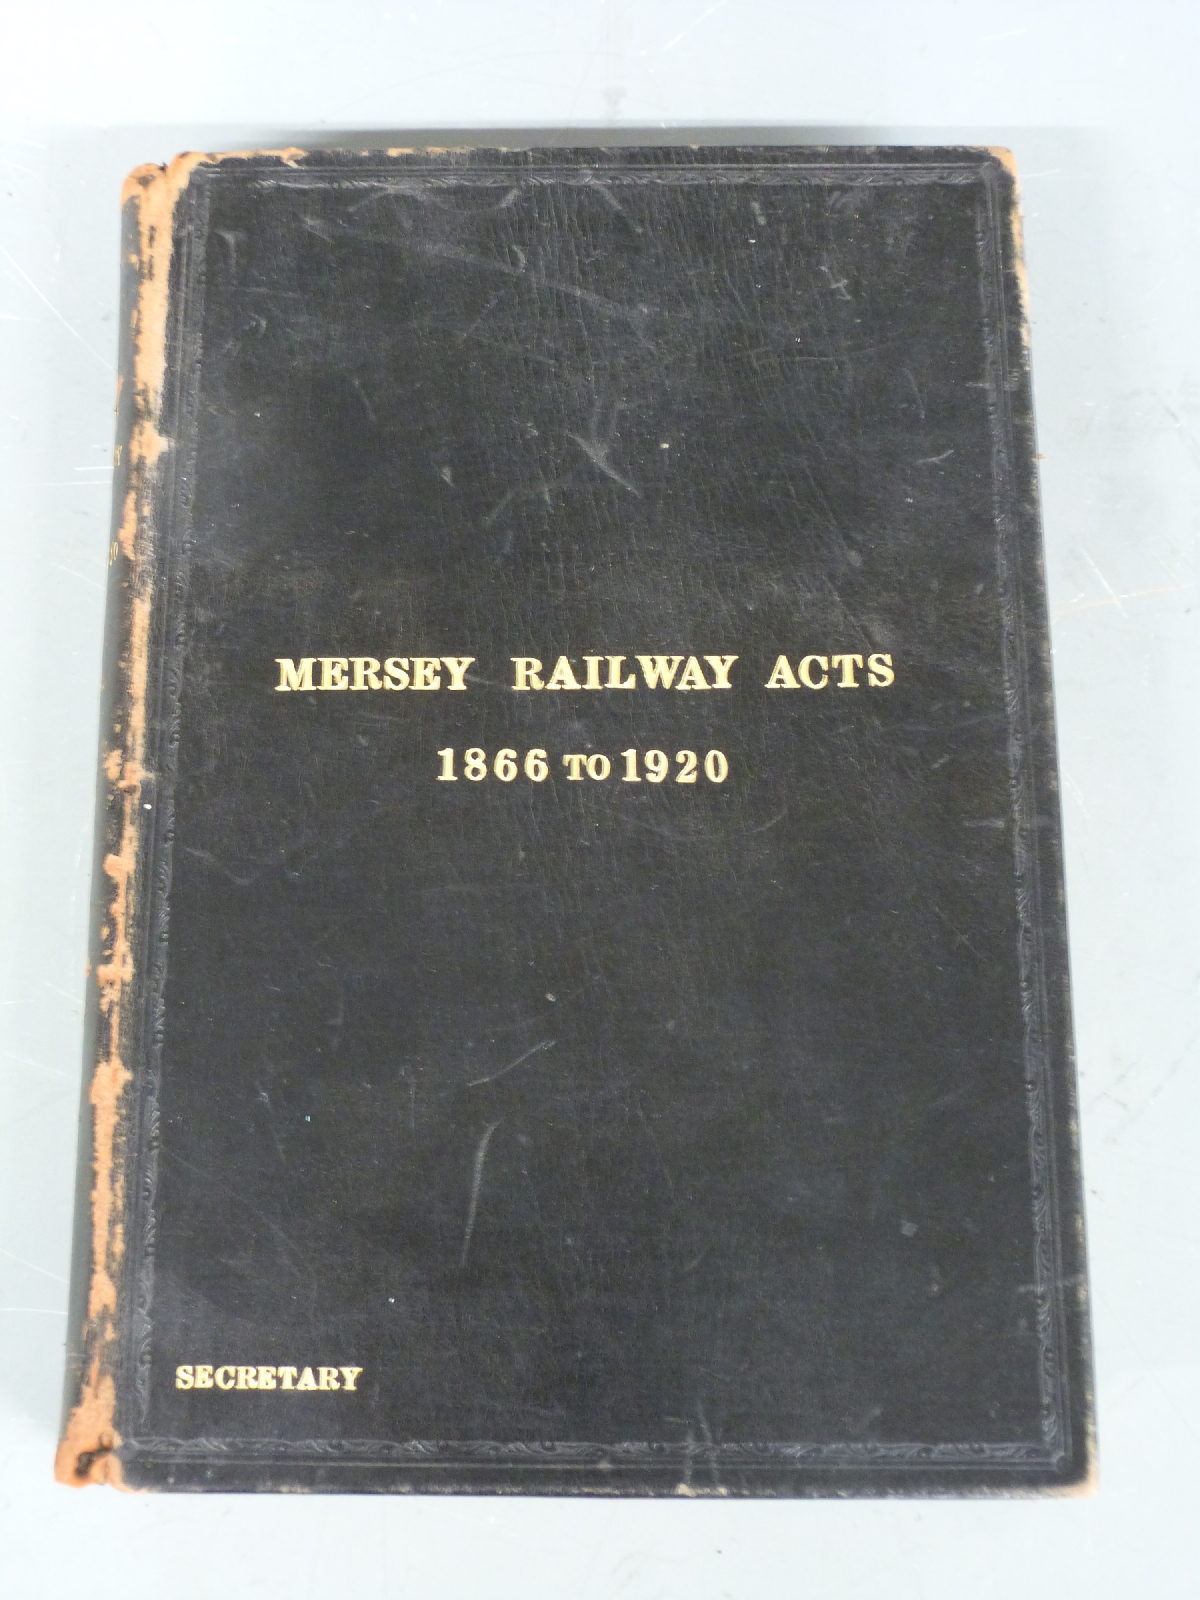 Lot 28 - Victorian Mersey Railway Acts 1866-1920 leather bound book, height 27cm